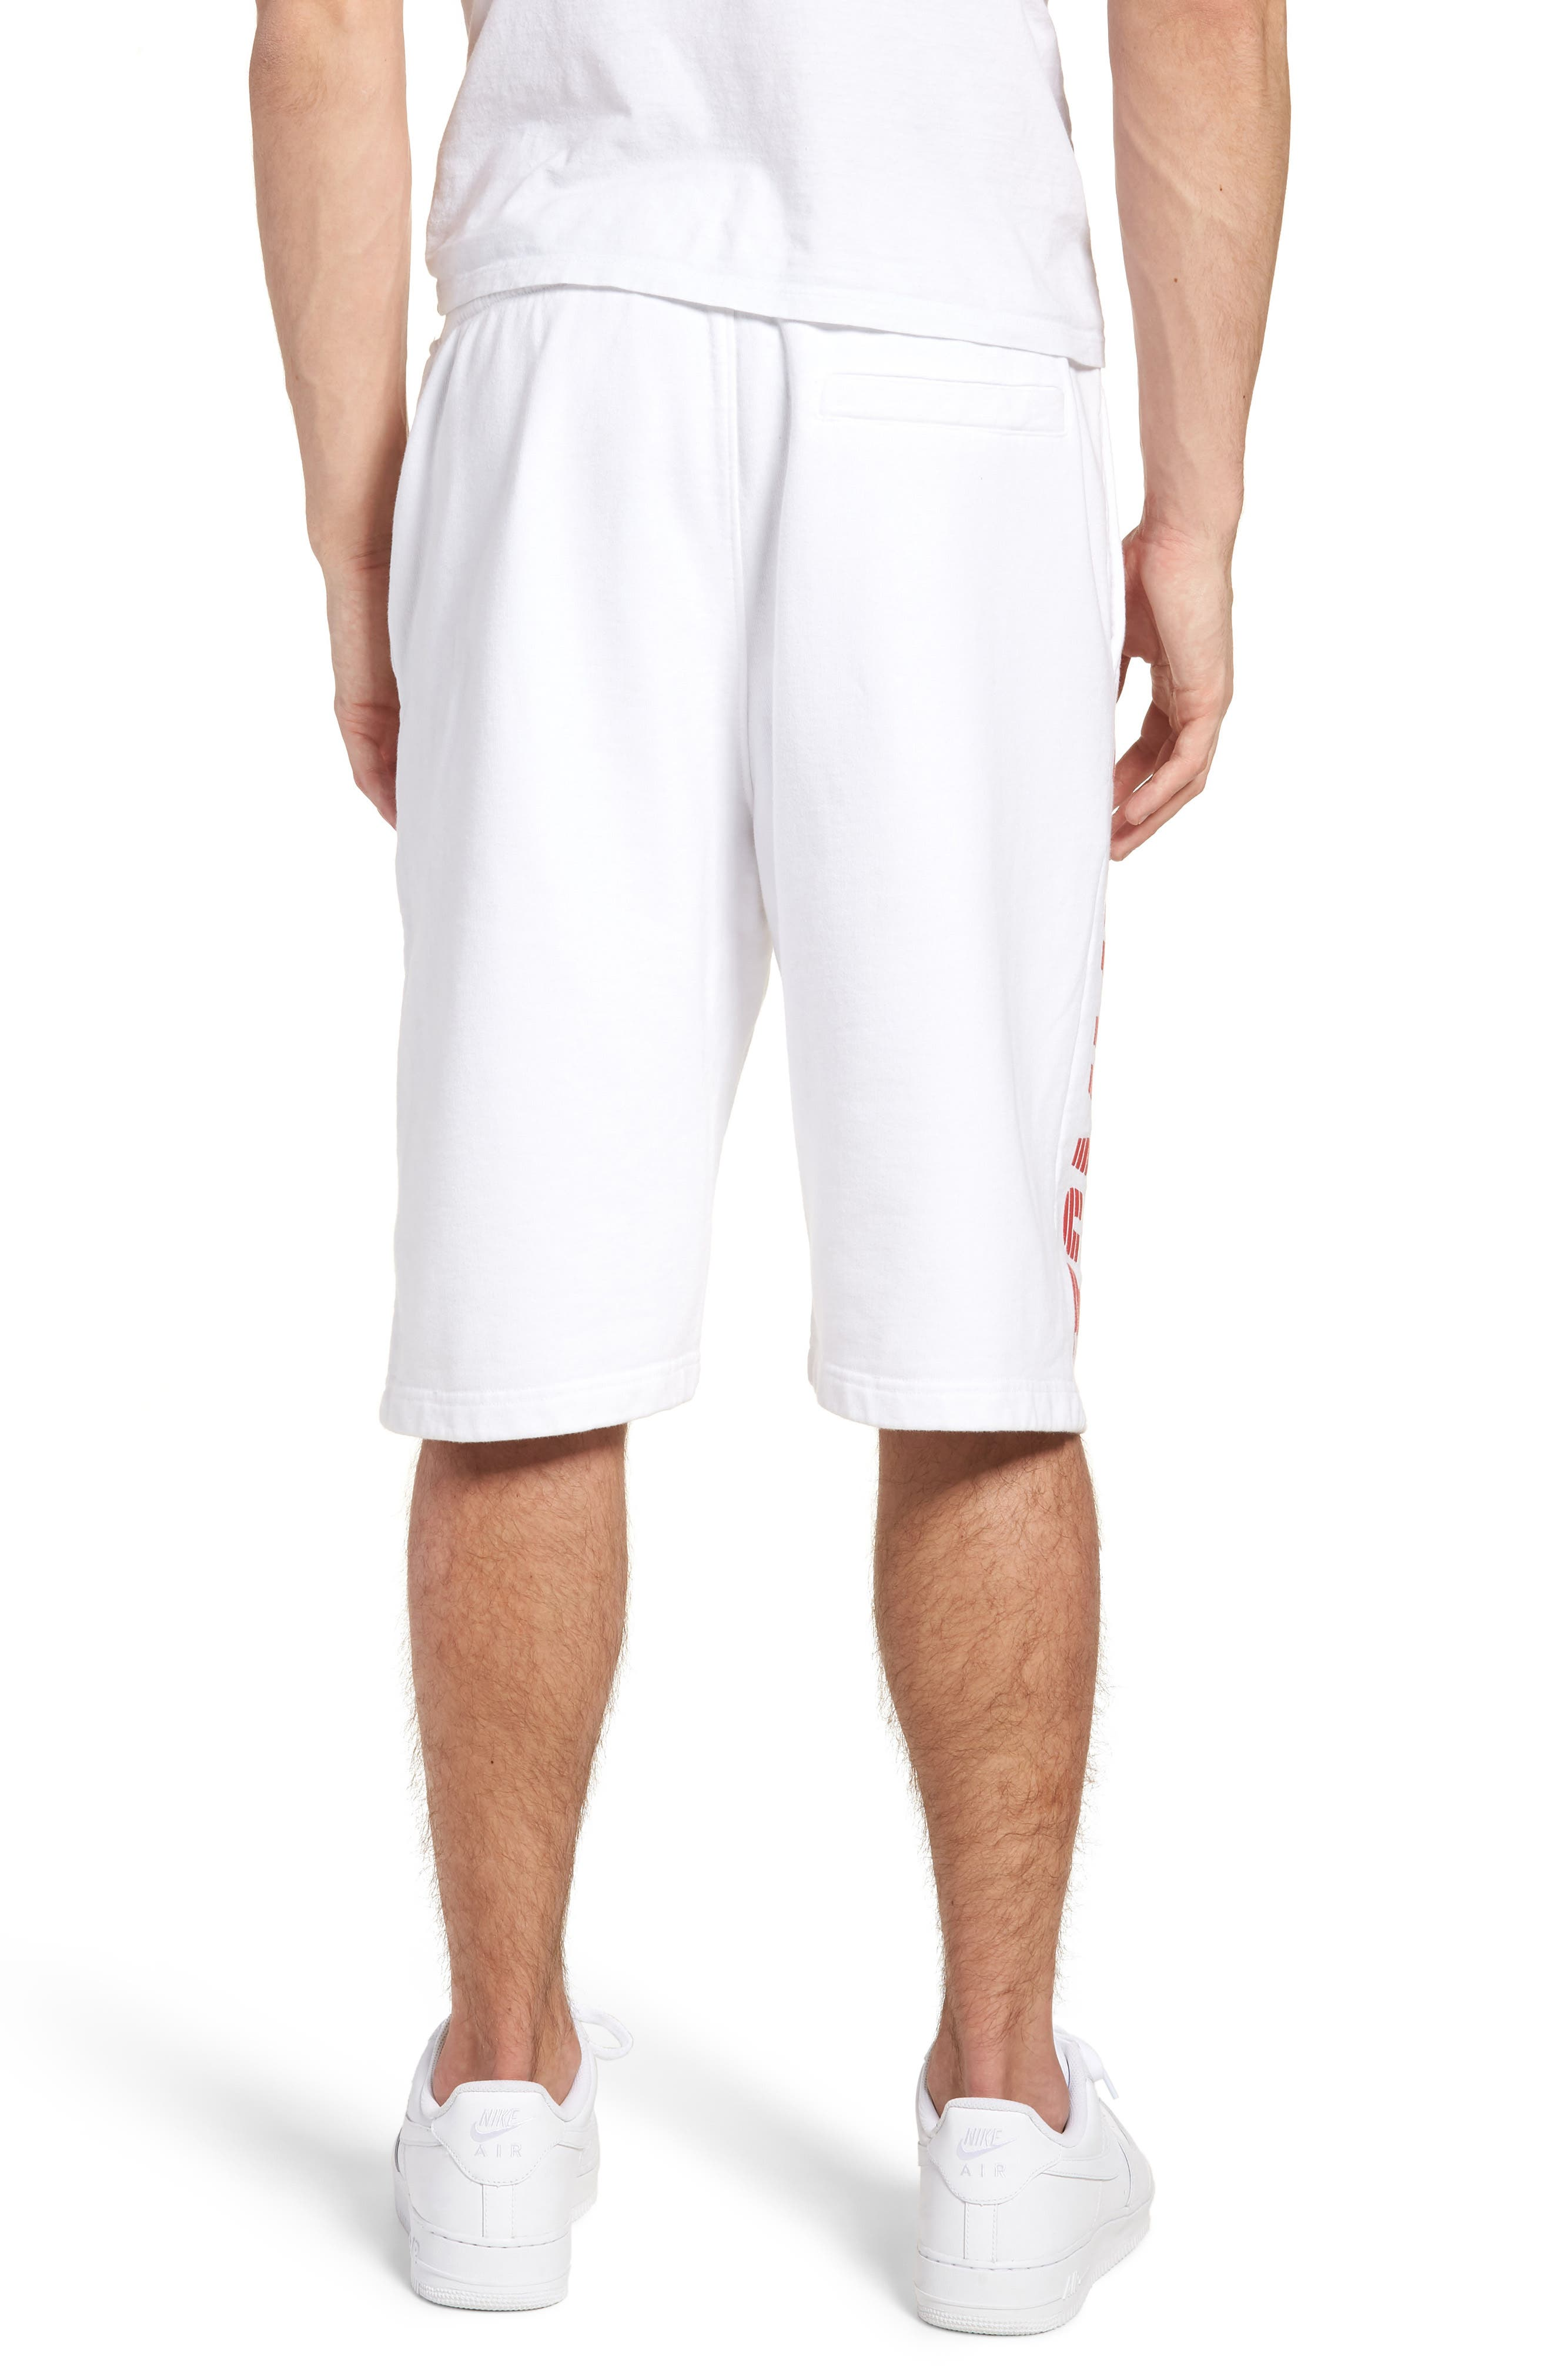 Vintage Graphic Basketball Shorts,                             Alternate thumbnail 2, color,                             Classic White